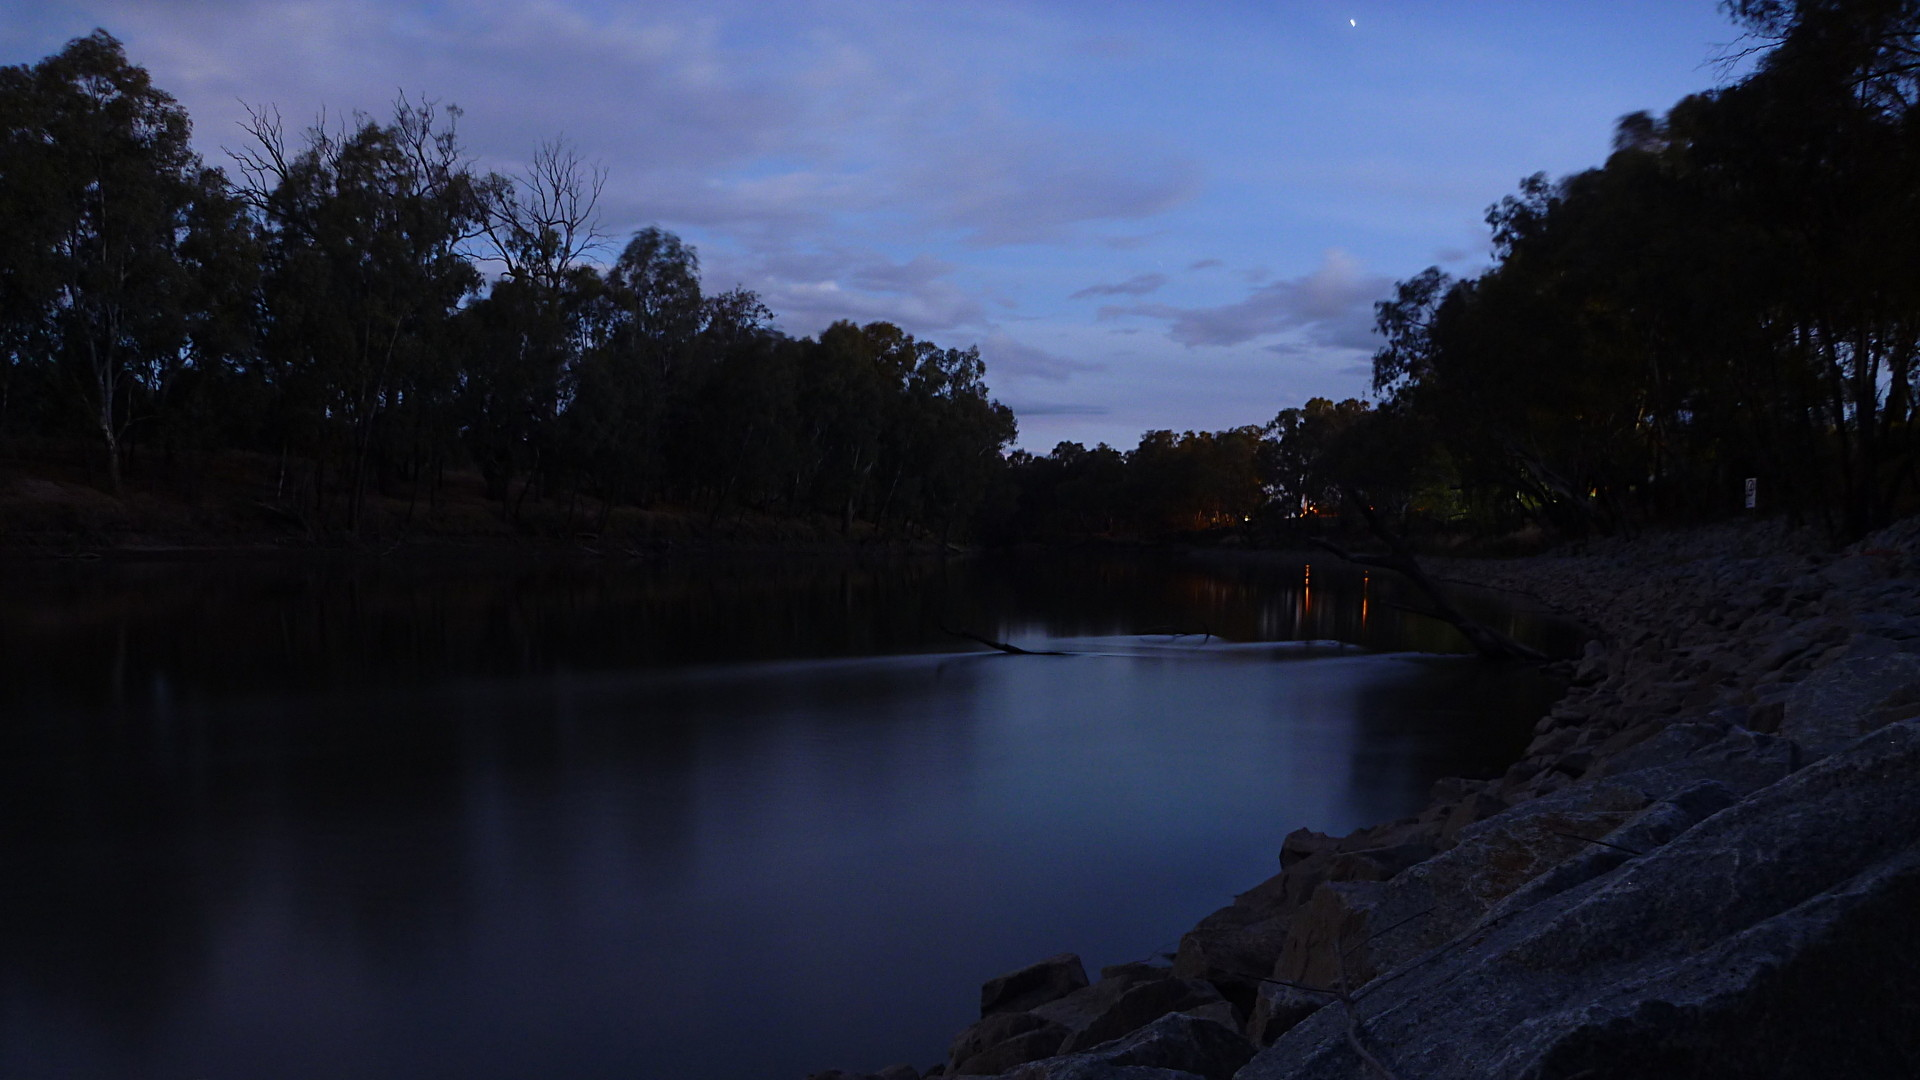 Res: 1920x1080, Long exposure. This was 60 seconds.